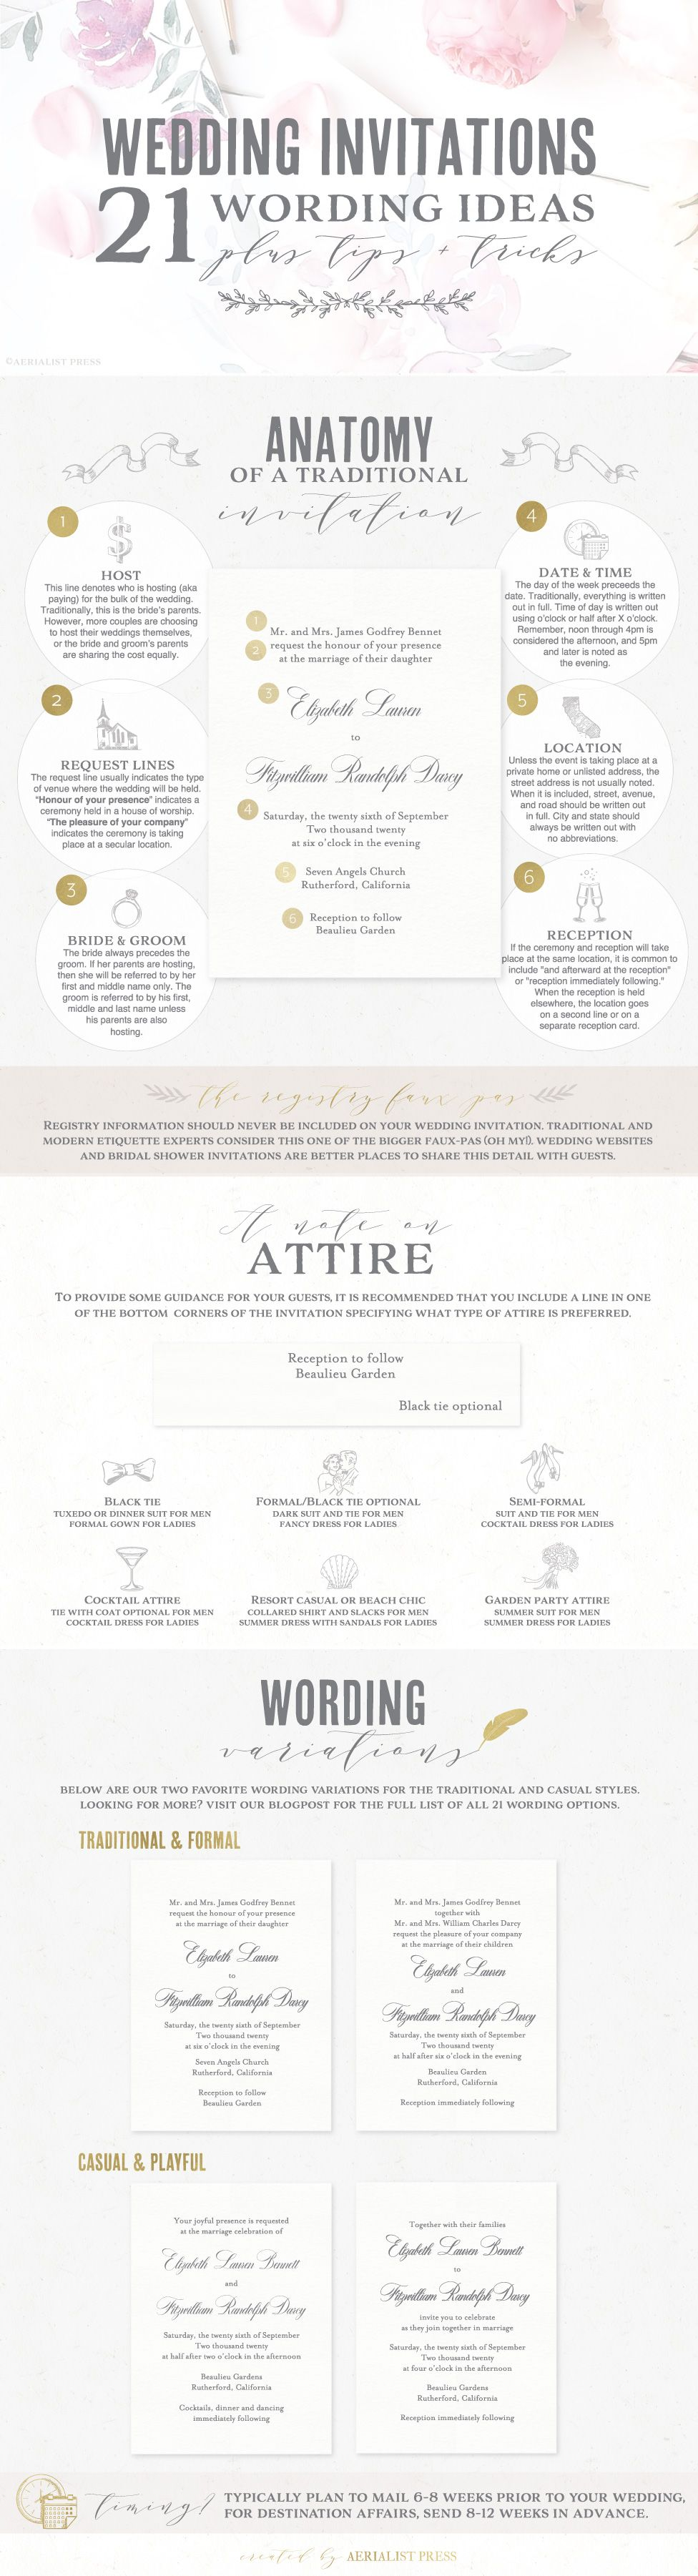 21 Best Wedding Invitation Wording Ideas | Aerialist Press ...